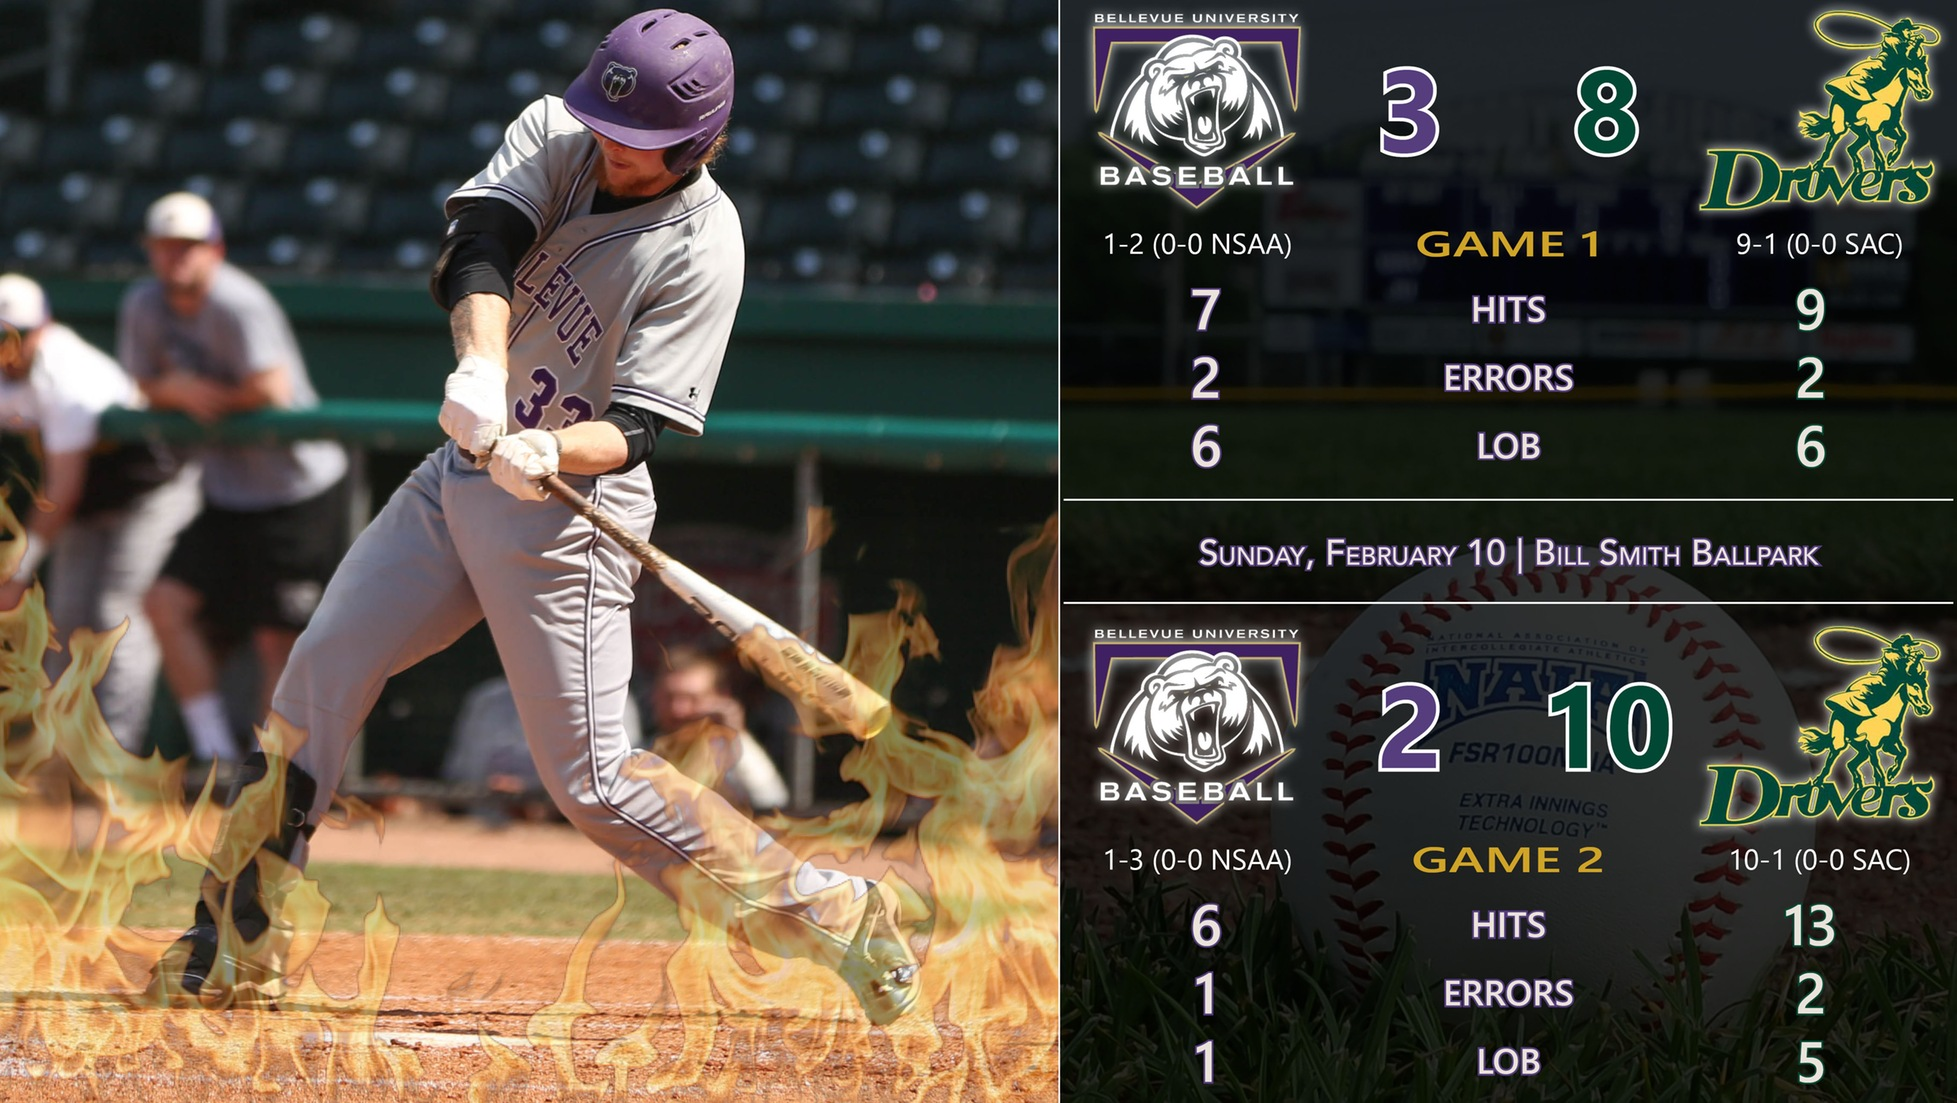 Bruins win opener, drop series at USAO